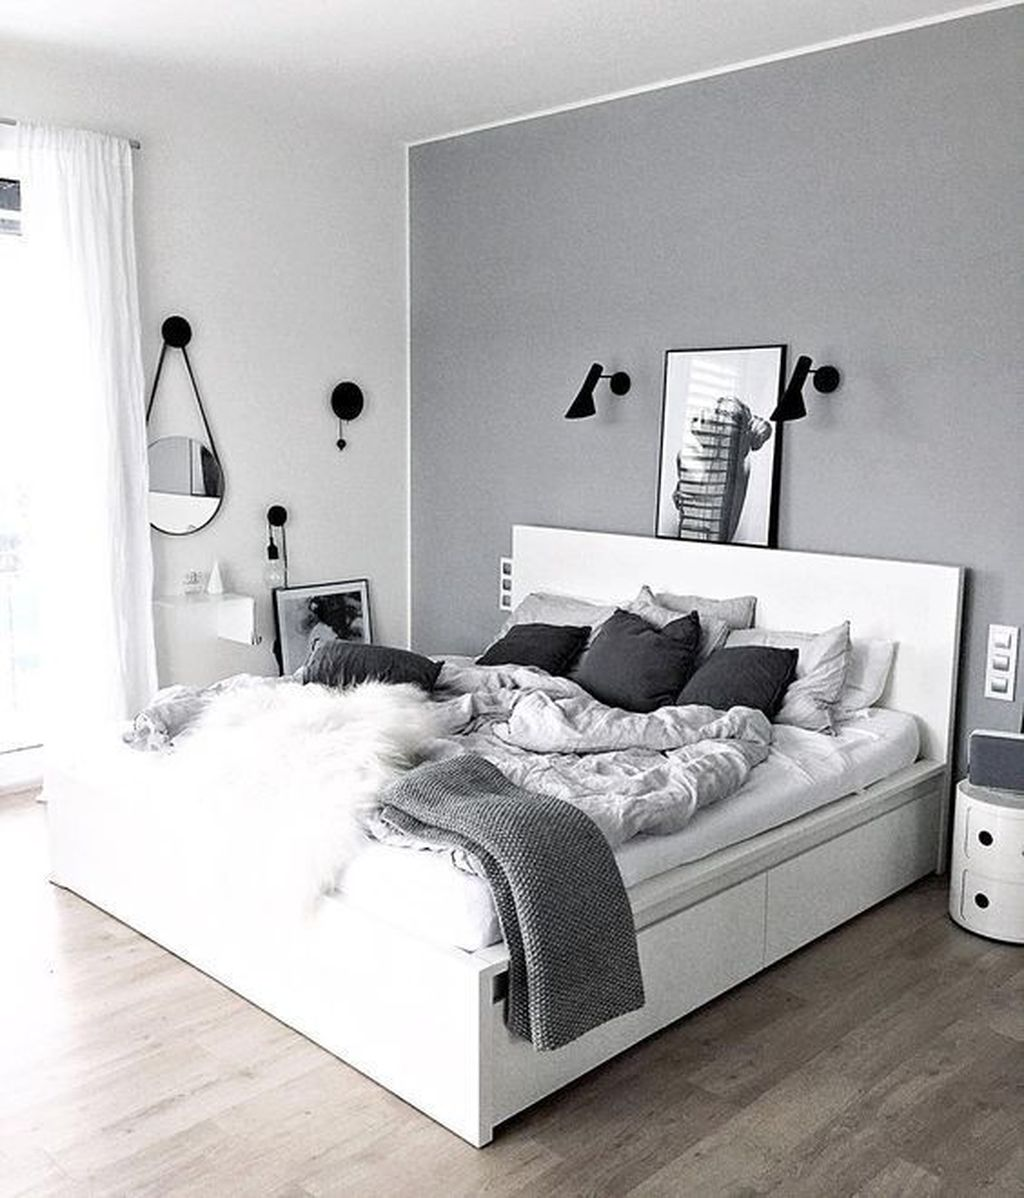 Fabulous White Bedroom Ideas To Make Your Sleep Comfortable 30